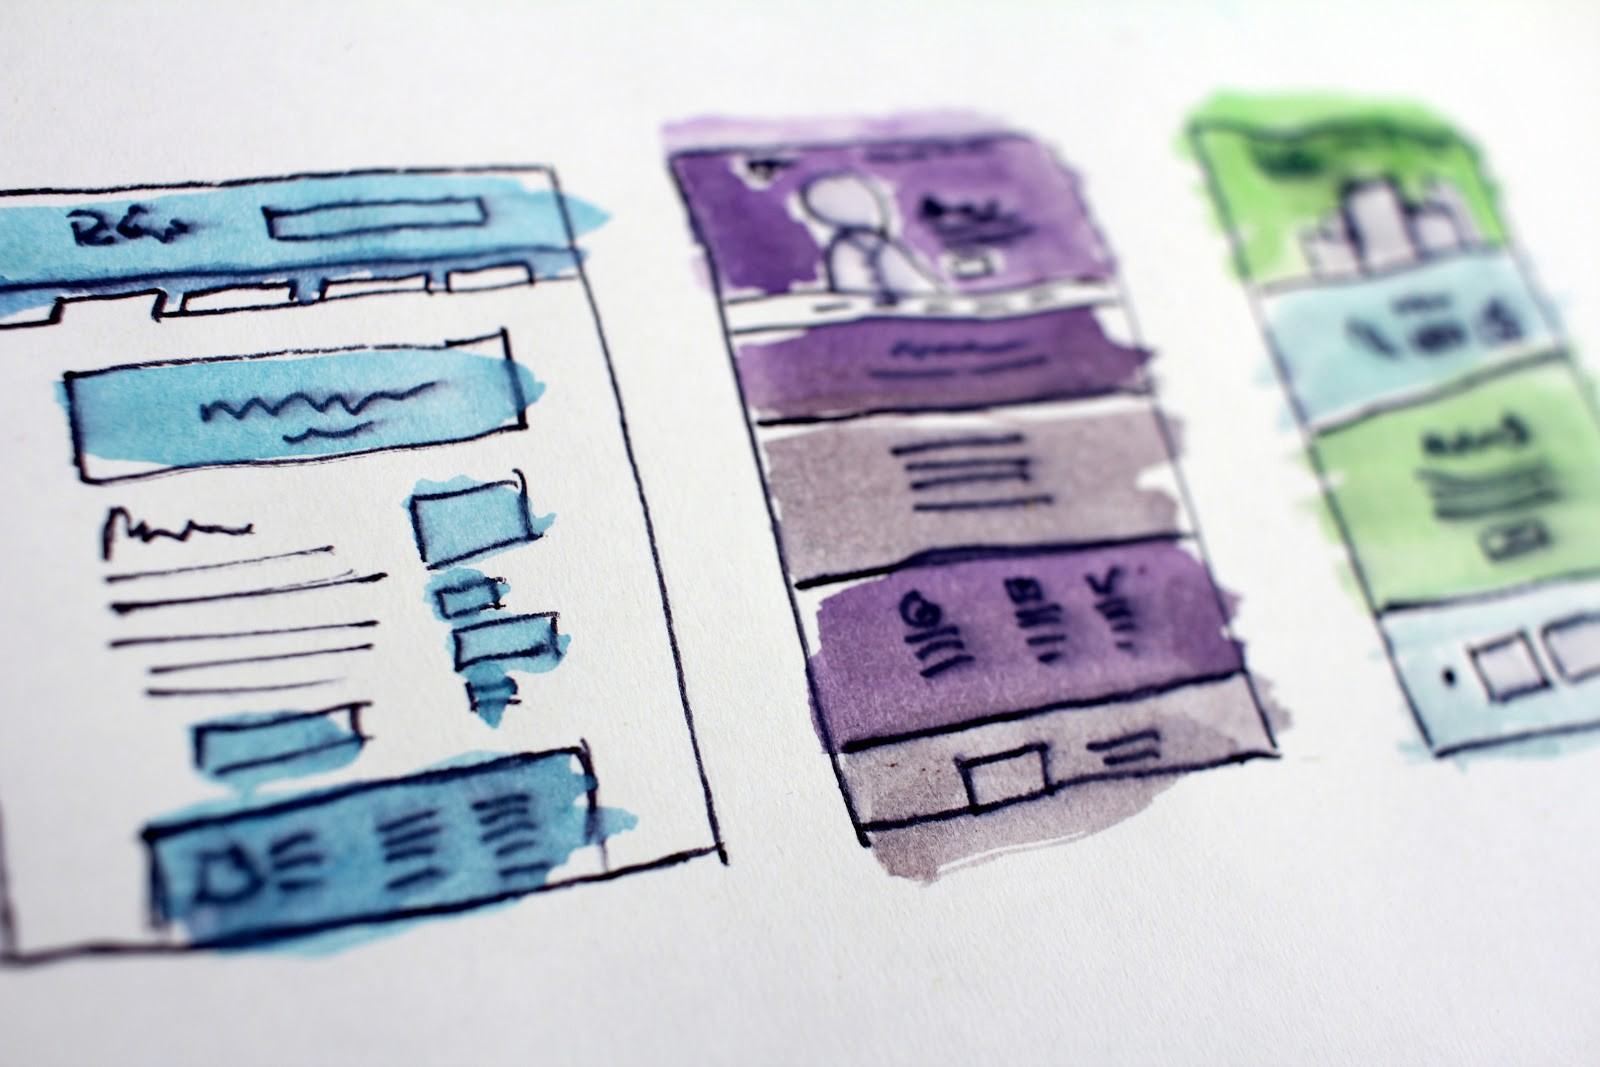 /top-7-ux-principles-for-designing-high-converting-landing-pages-3e4cb951c8e2 feature image